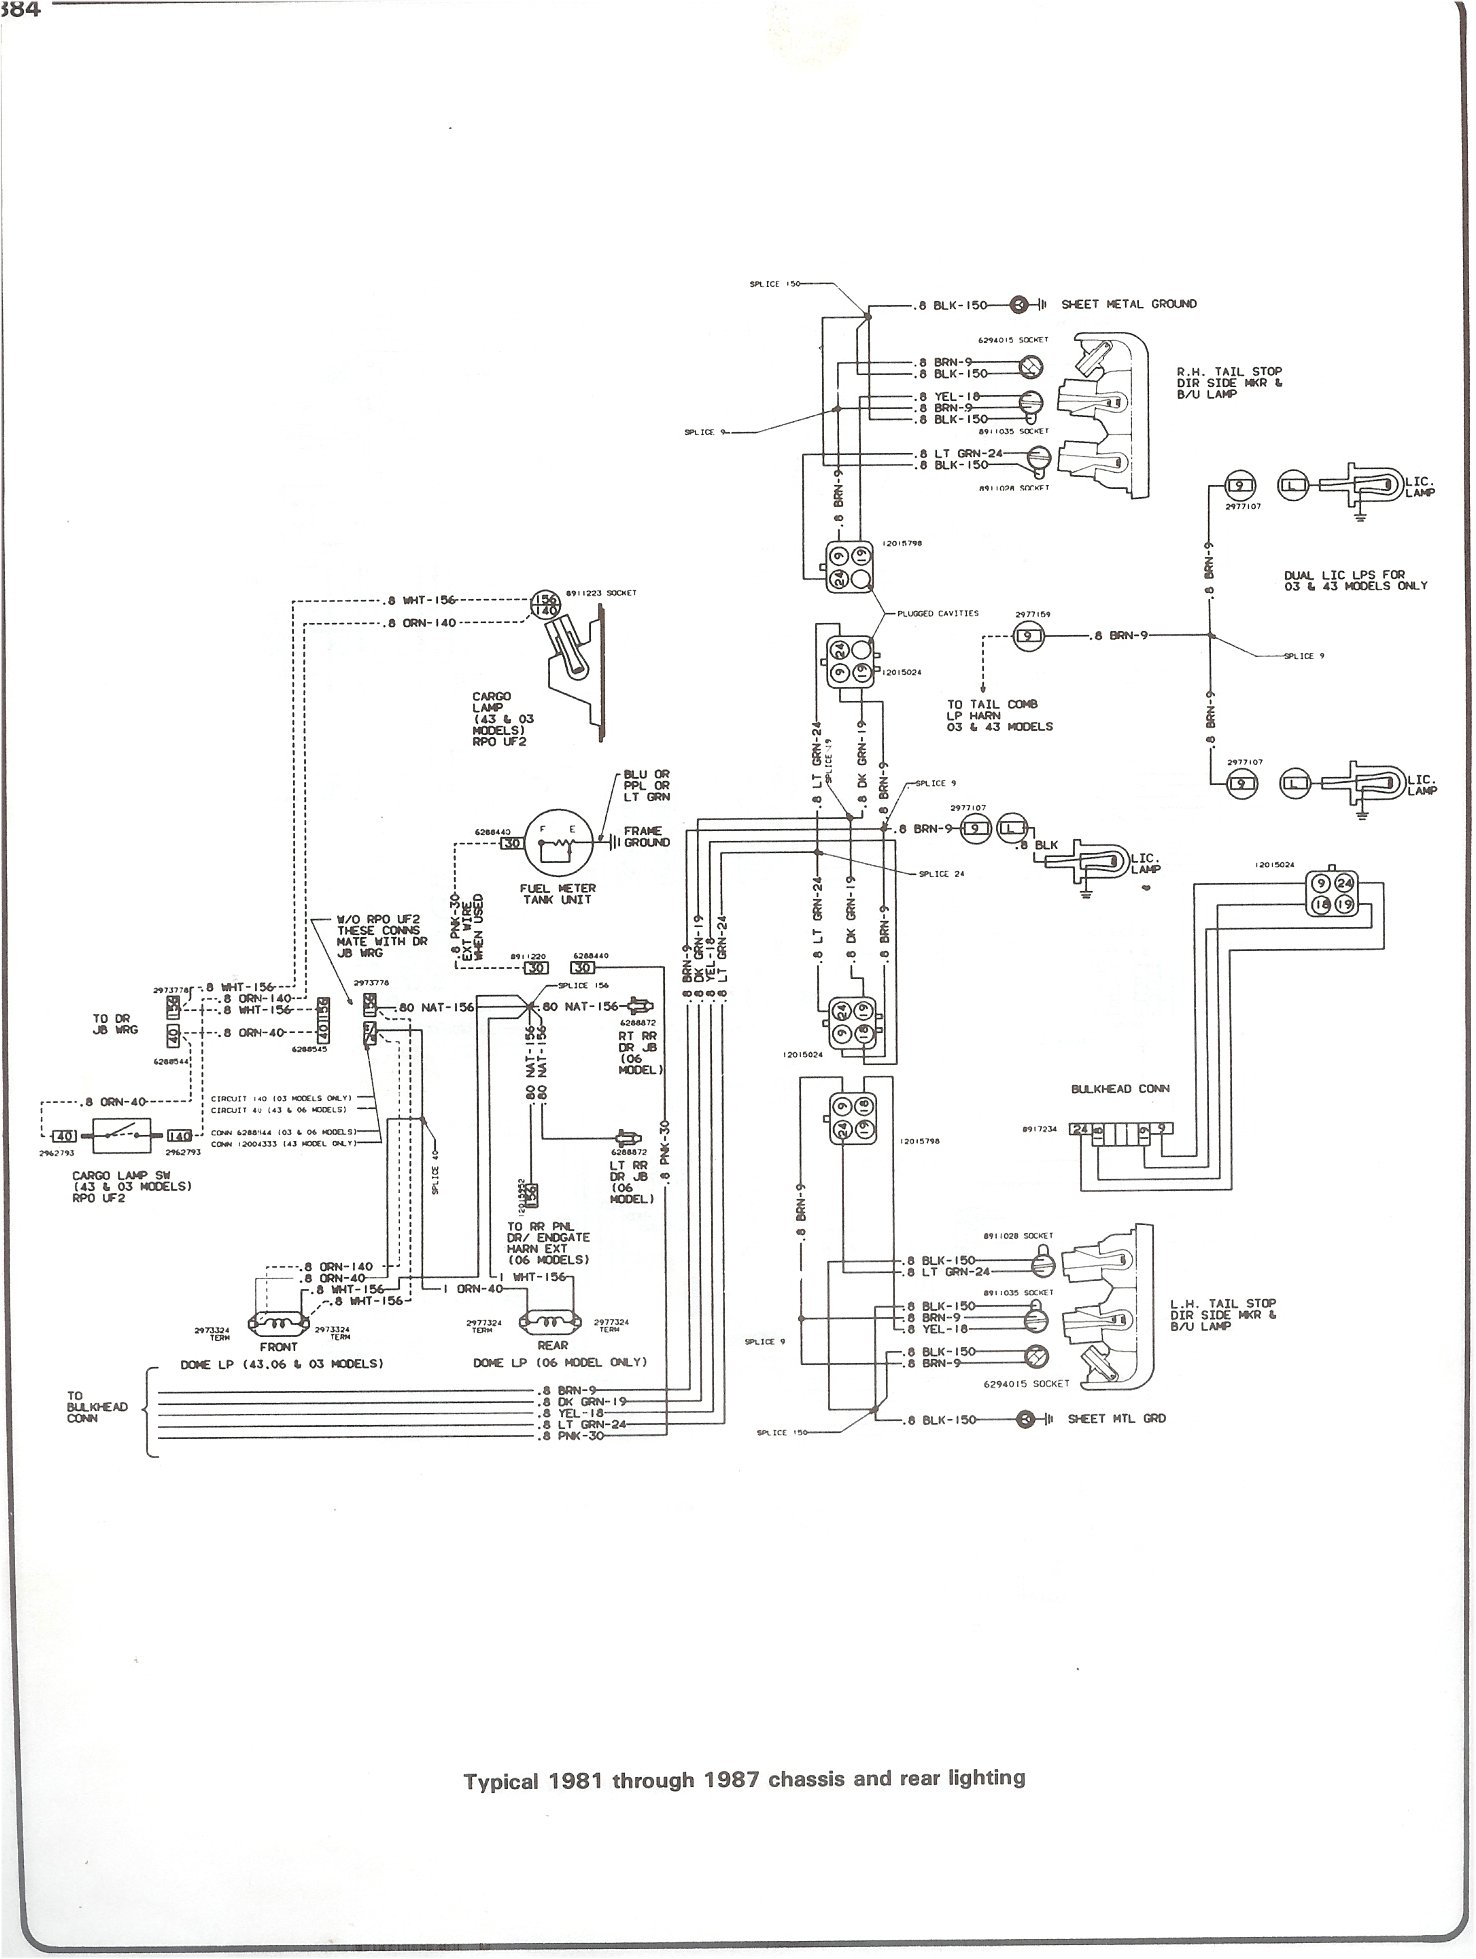 78 Suburban Wiring Diagram 1991 Chevy Complete 73 87 Diagrams Rh Forum 87chevytrucks Com Schematic